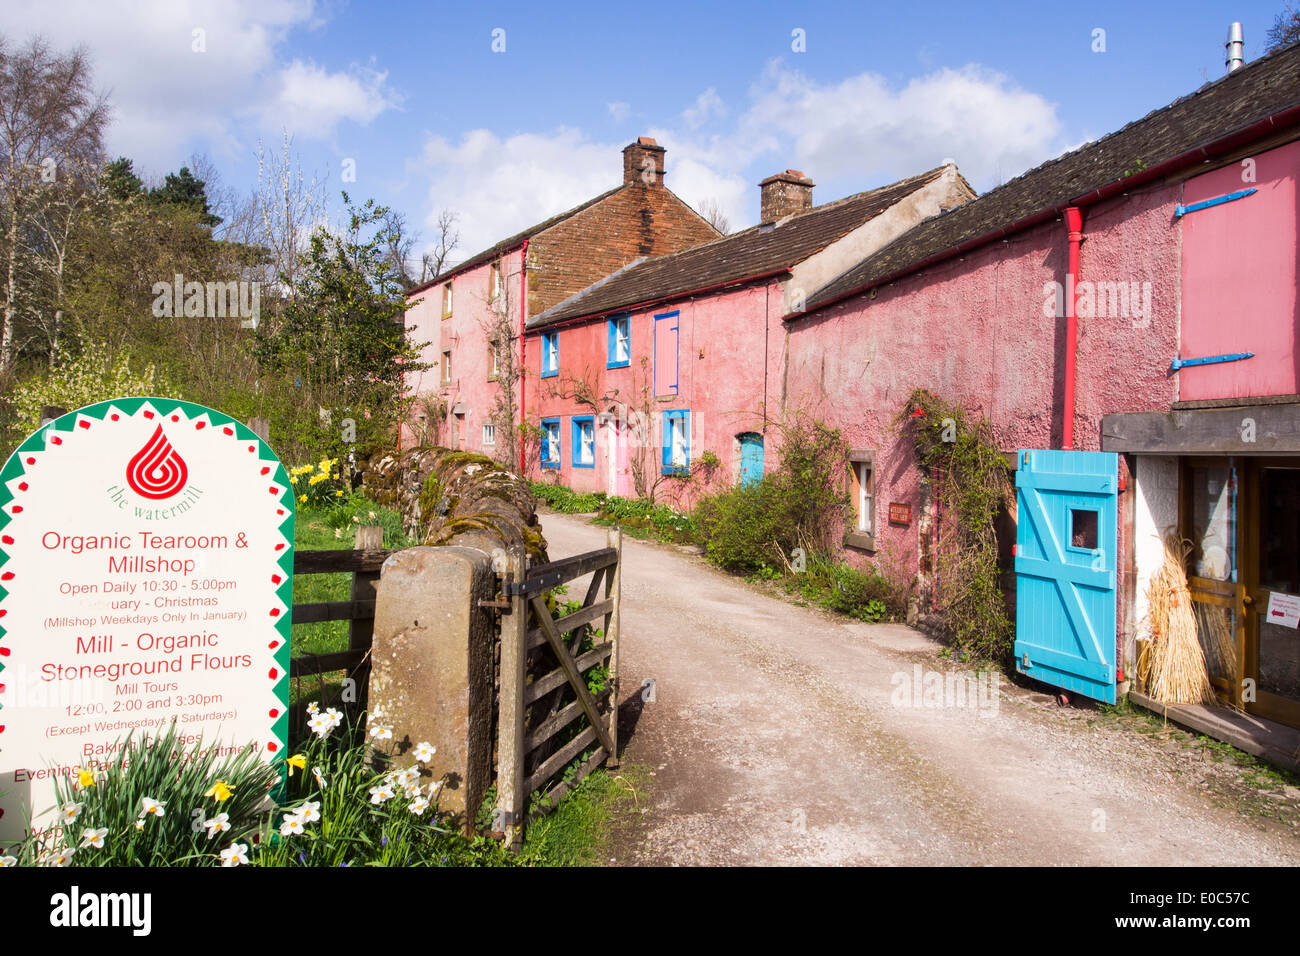 An organic watermill in Little Salkeld, in the Eden Valley, Cumbria, UK. - Stock Image